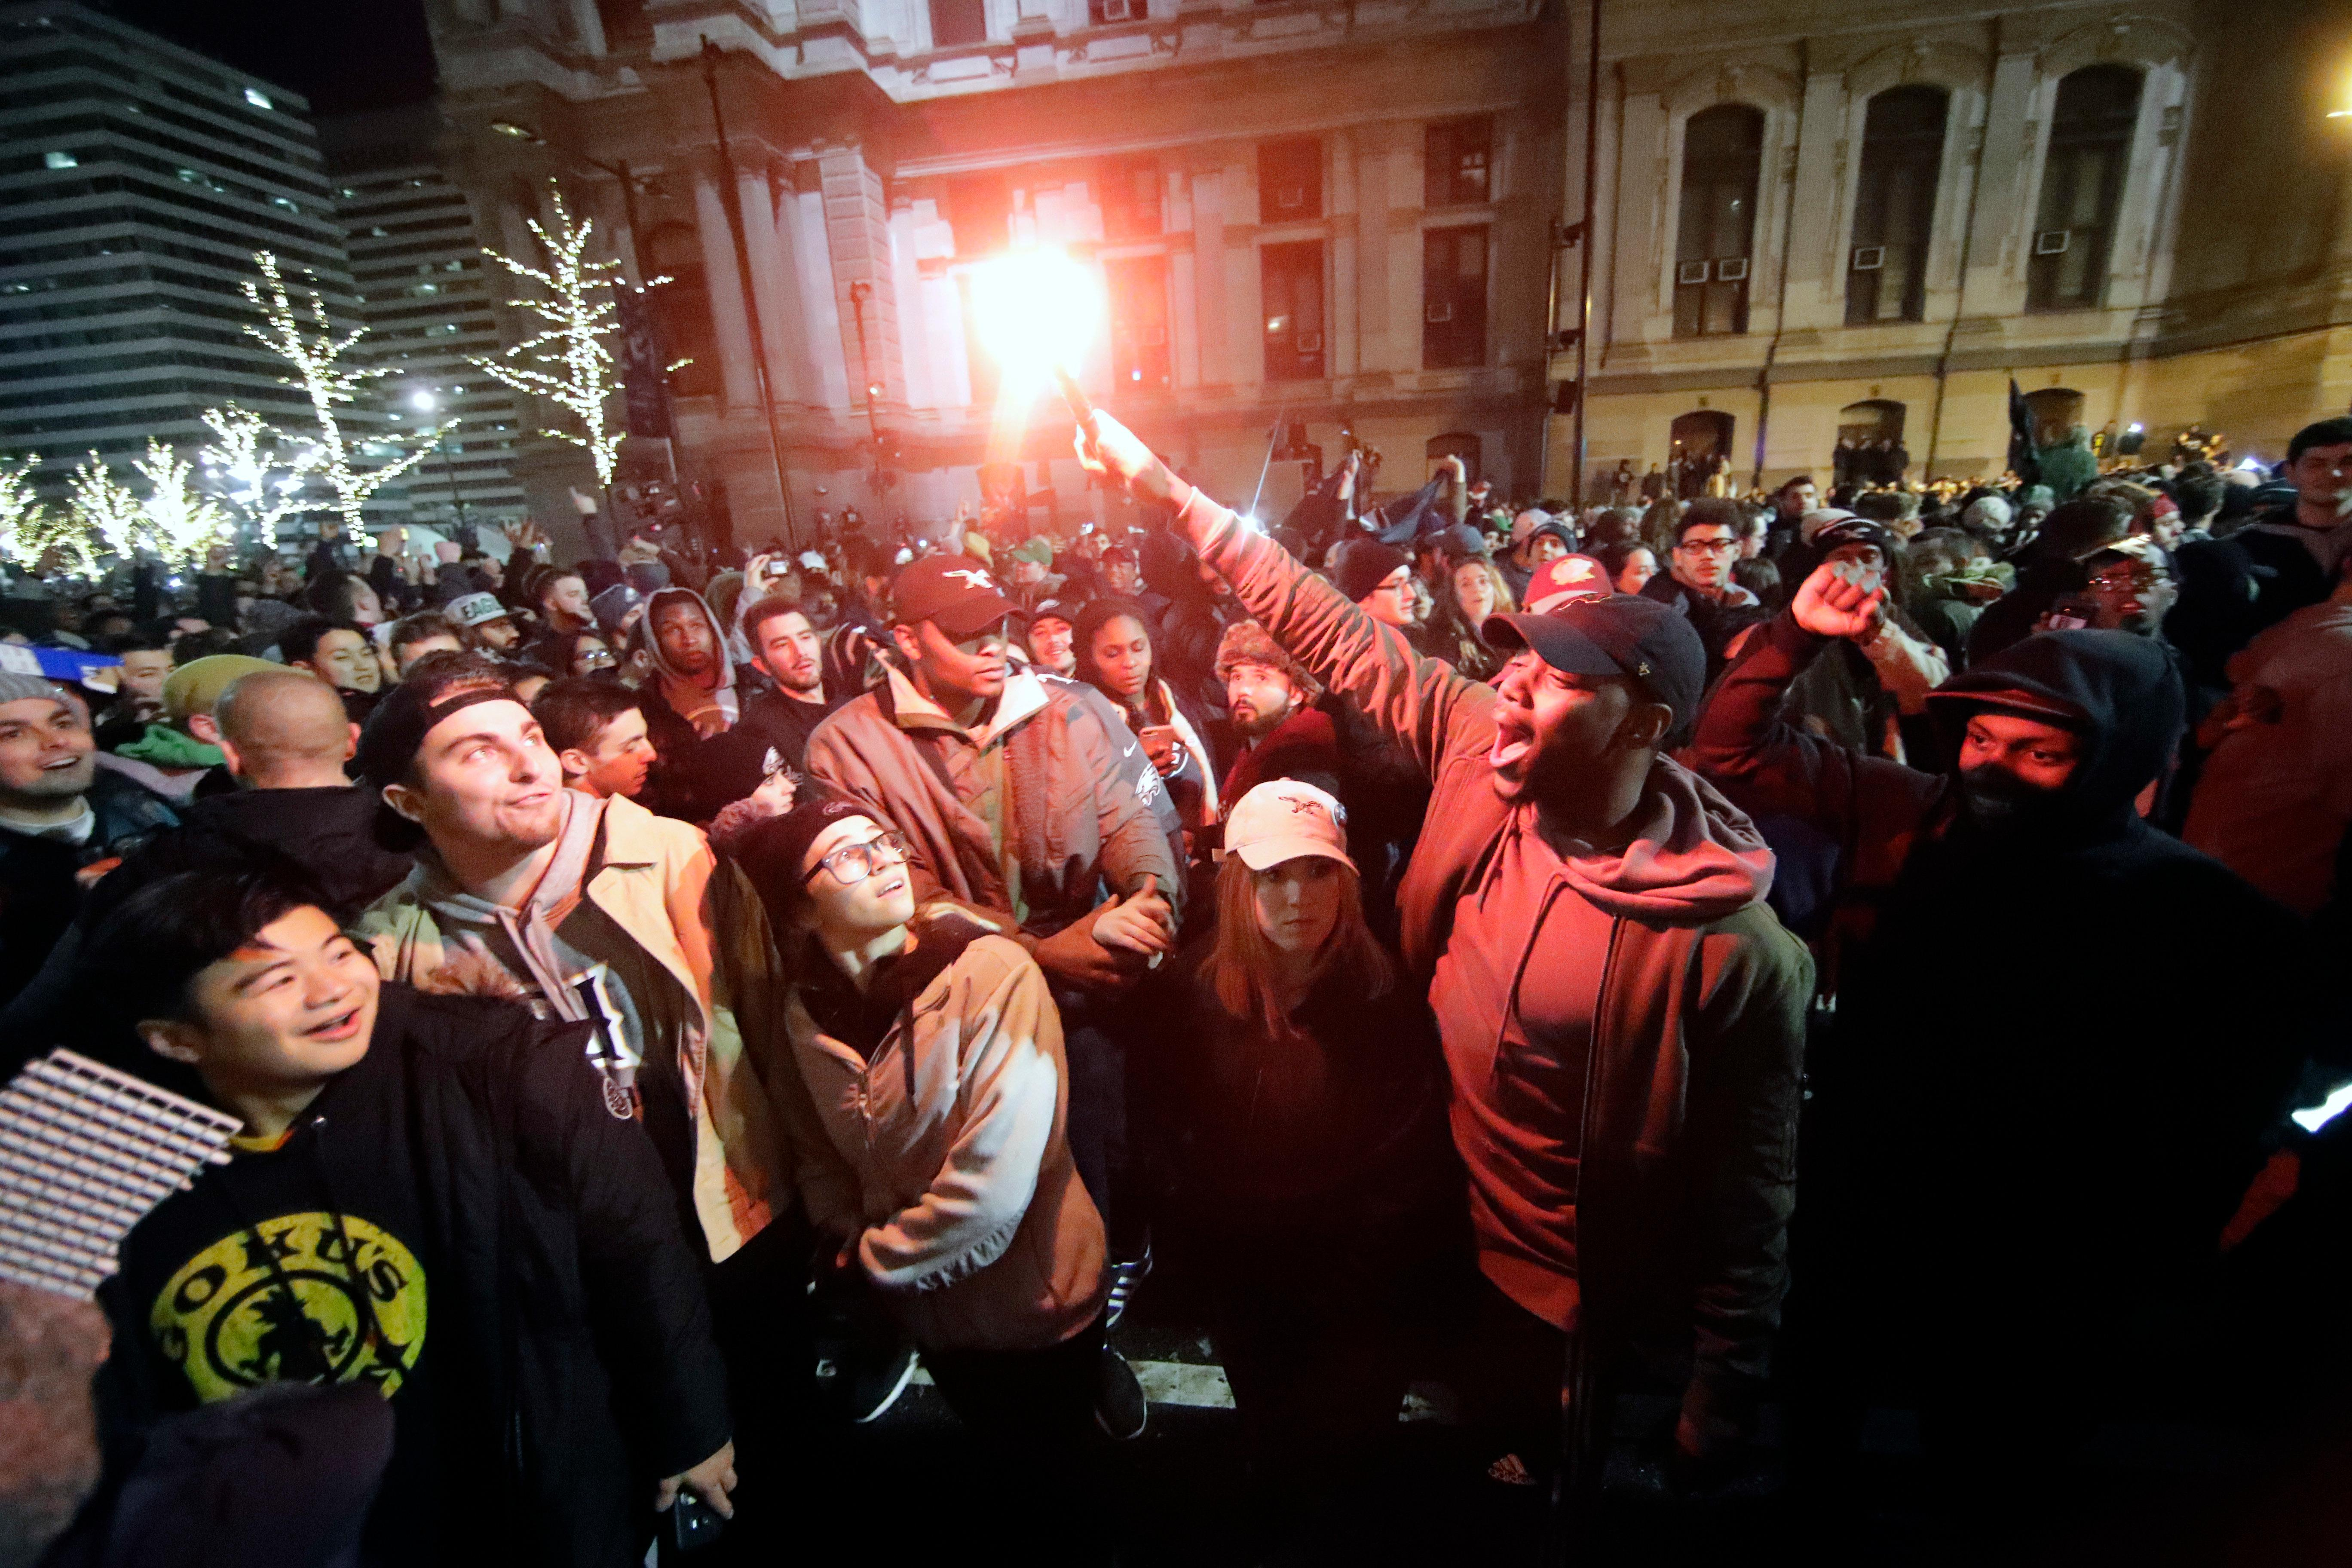 Philadelphia Eagles fans celebrate the team's victory in NFL Super Bowl 52 between the Philadelphia Eagles and the New England Patriots, Sunday Feb. 4, 2018, in downtown Philadelphia. (AP Photo/Matt Rourke)